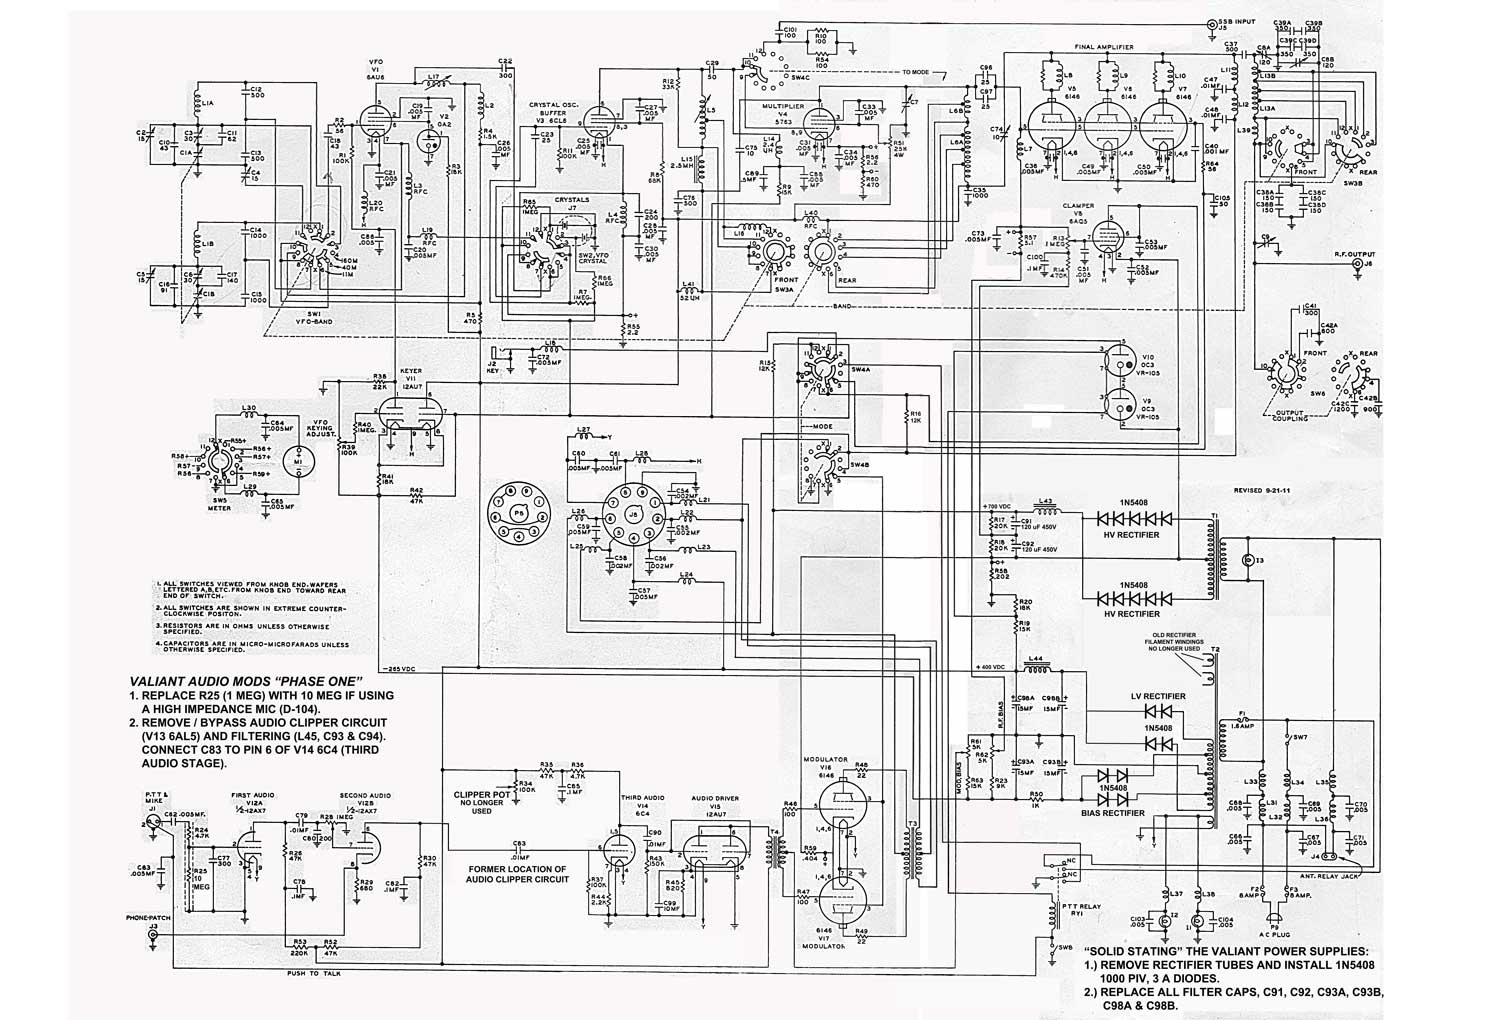 VALIANT SCHEM FULL n2ffl johnson viking valiant viking range wiring diagrams at bayanpartner.co